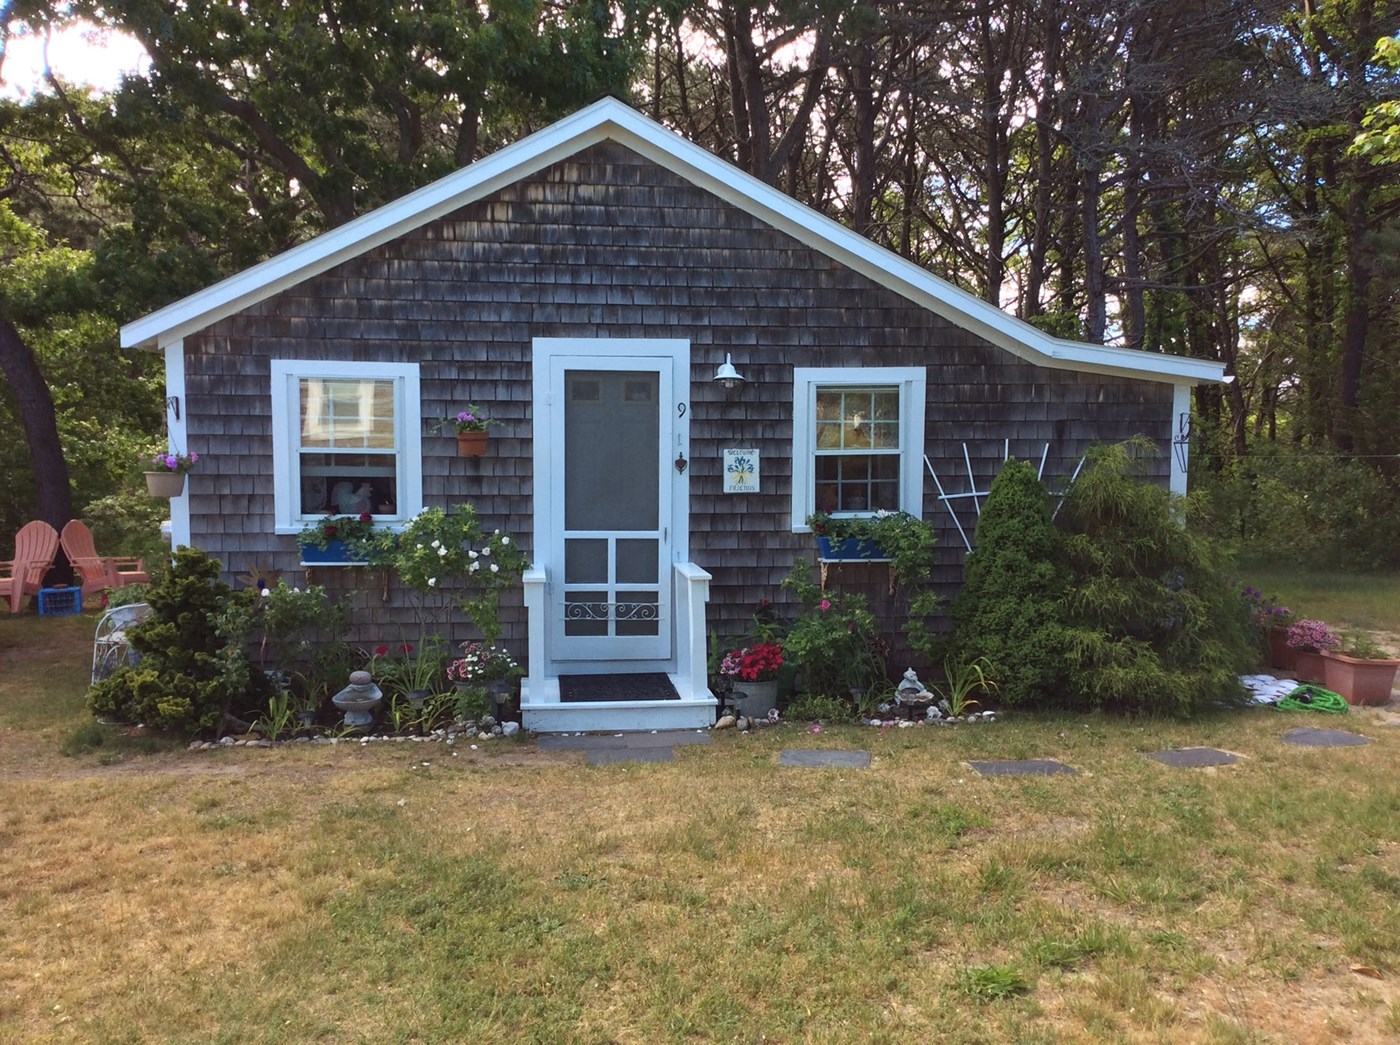 Truro Vacation Rental Home In Cape Cod Ma 02652 4 10ths Of A Mile To Nearest Bay Beach Id 27487